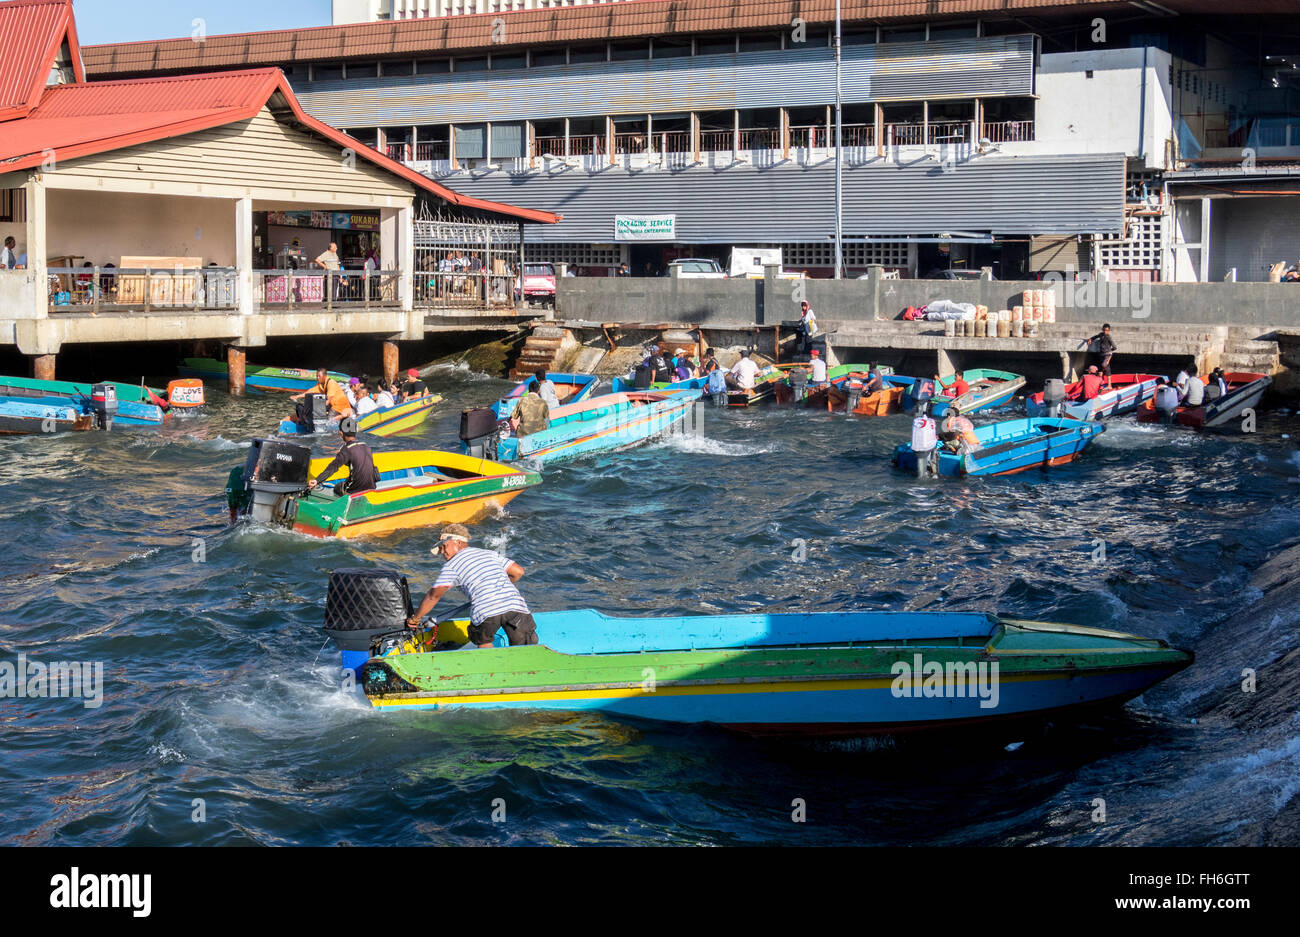 Boats going to and from the Island around Kota Kinabalu fish market Sabah Malaysia when the sea is rough on otherwise - Stock Image